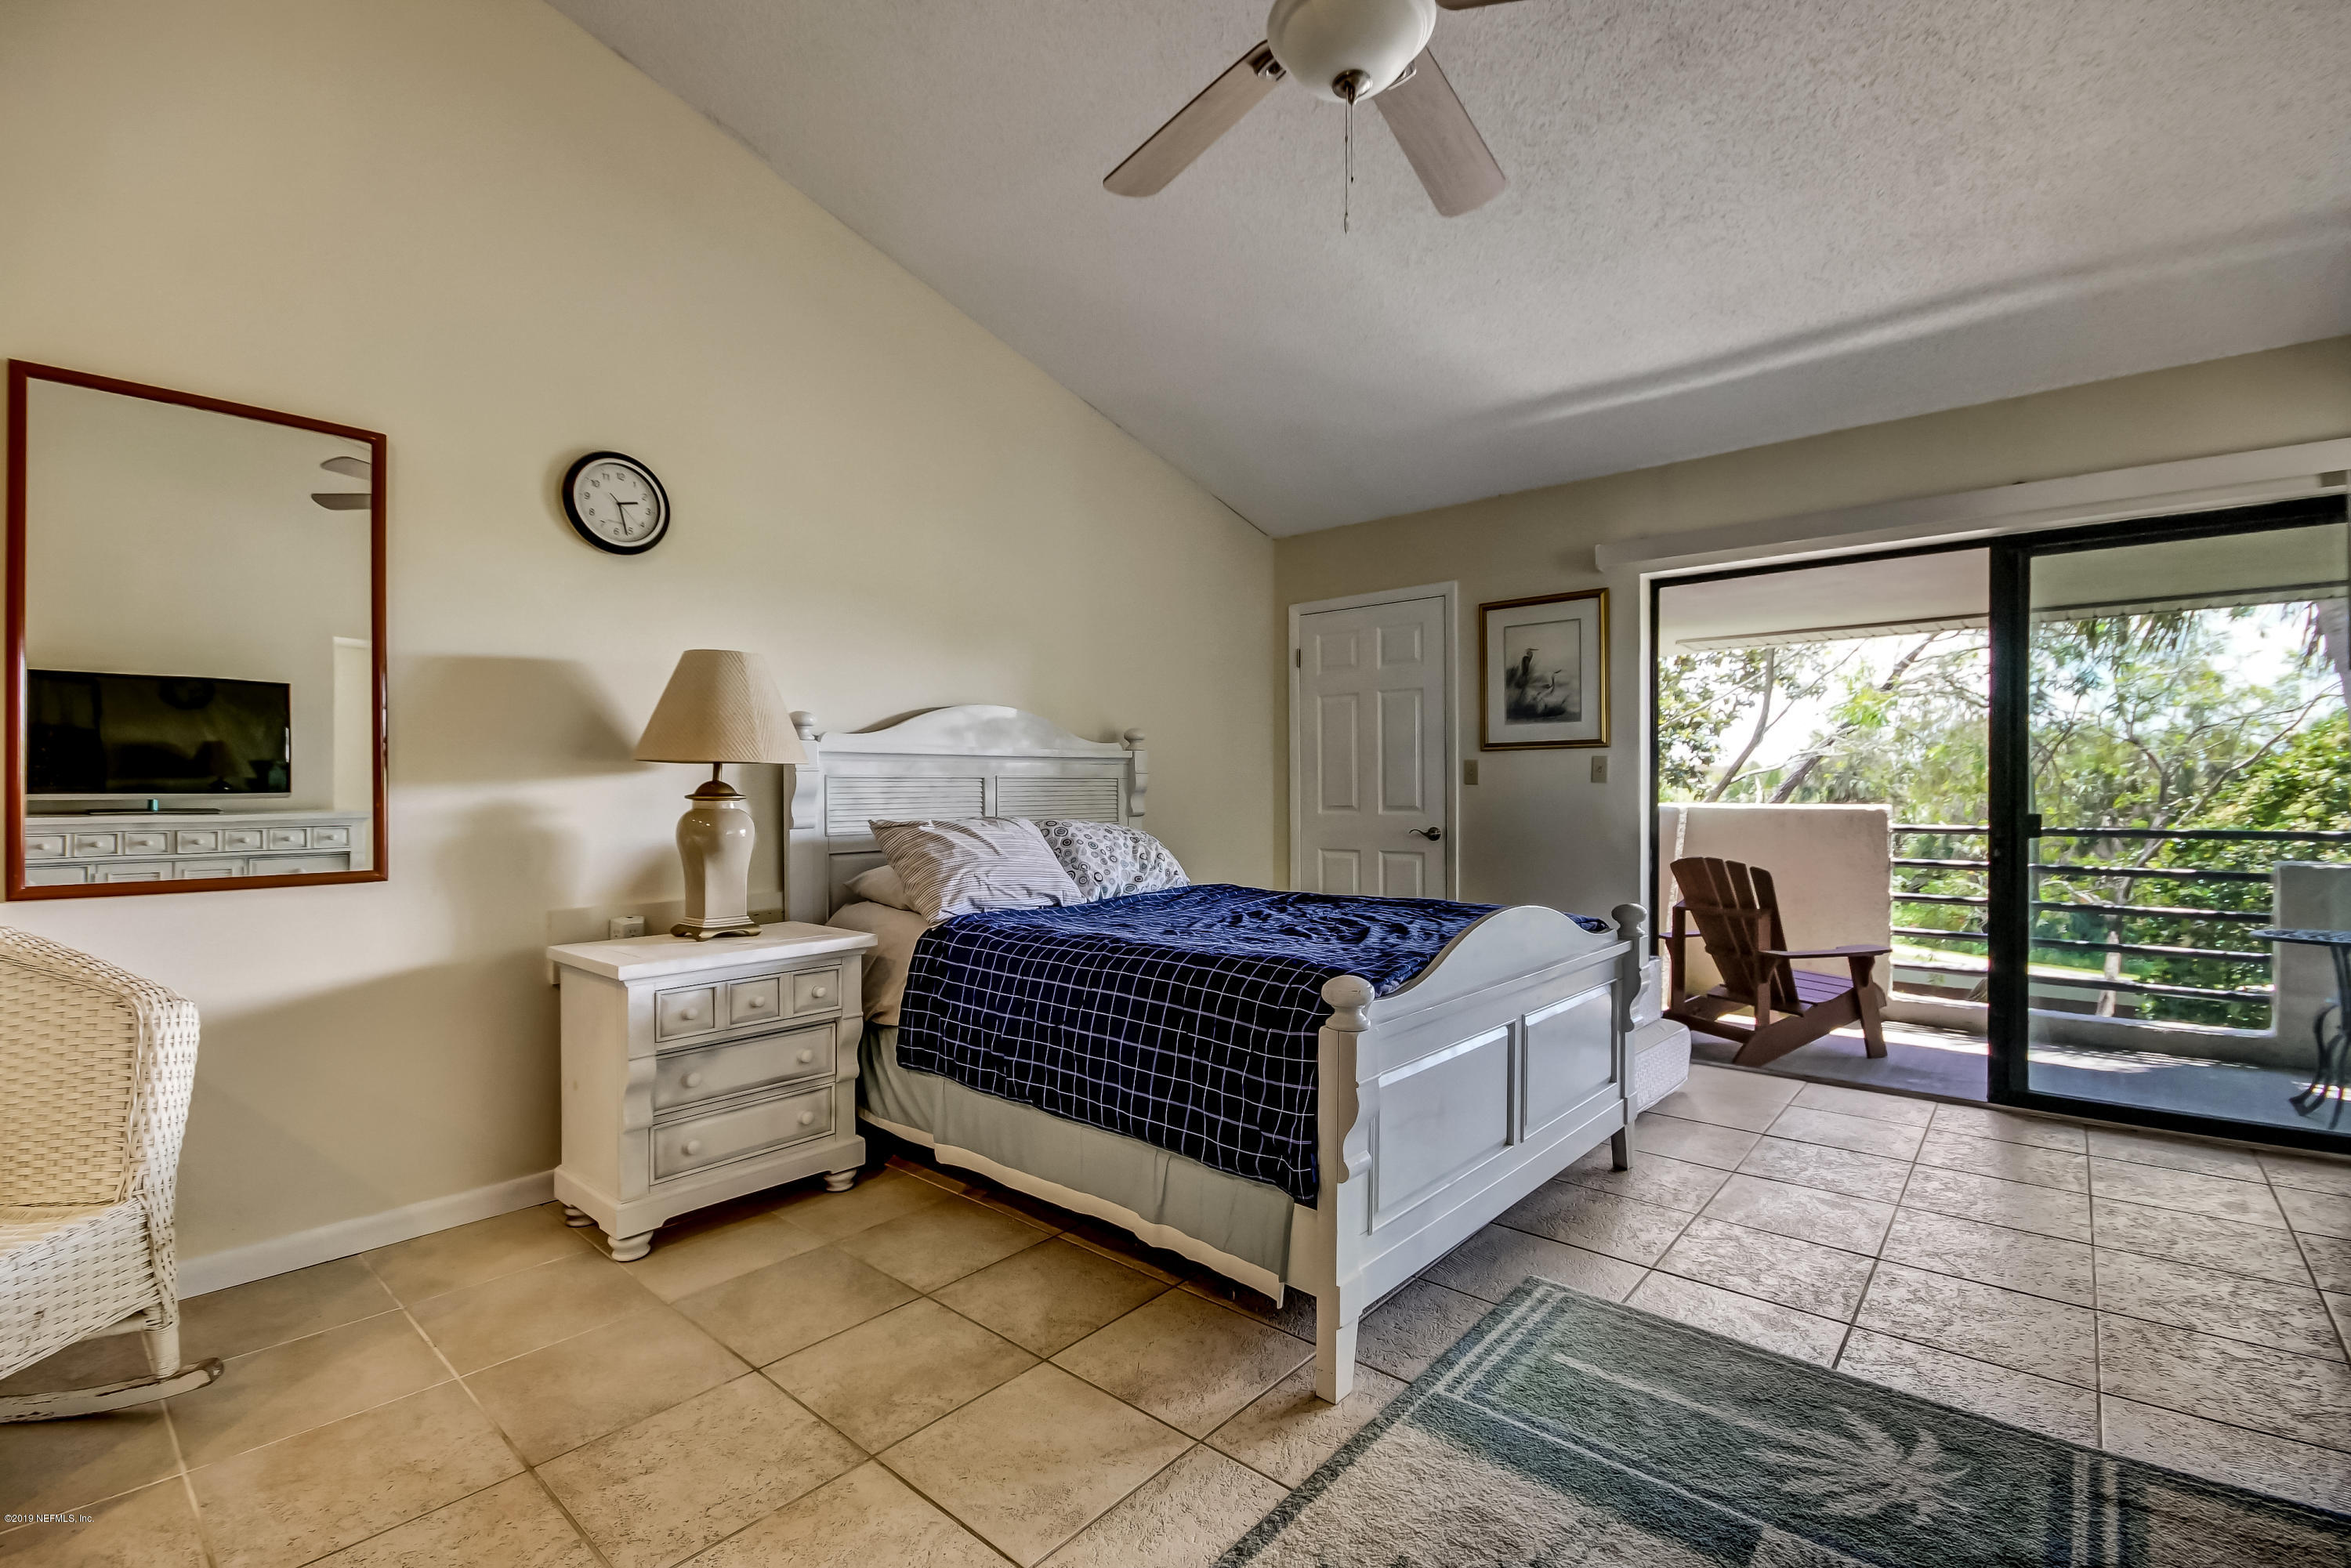 635 SUMMER, PONTE VEDRA BEACH, FLORIDA 32082, 1 Bedroom Bedrooms, ,1 BathroomBathrooms,Condo,For sale,SUMMER,992438